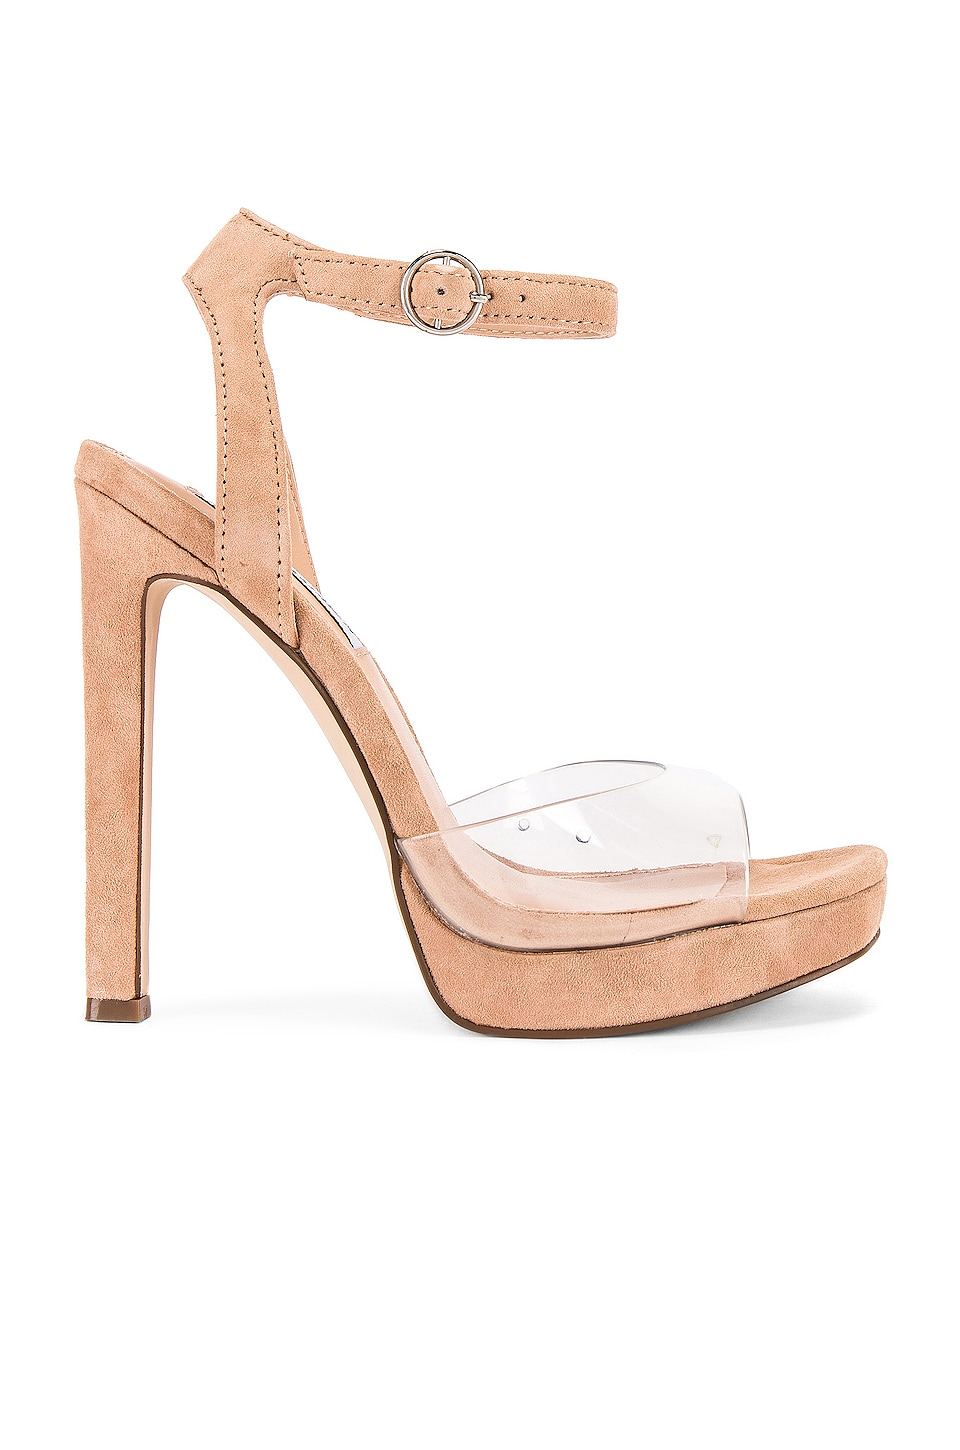 Steve Madden CHAUSSURES COMPENSÉES LUV